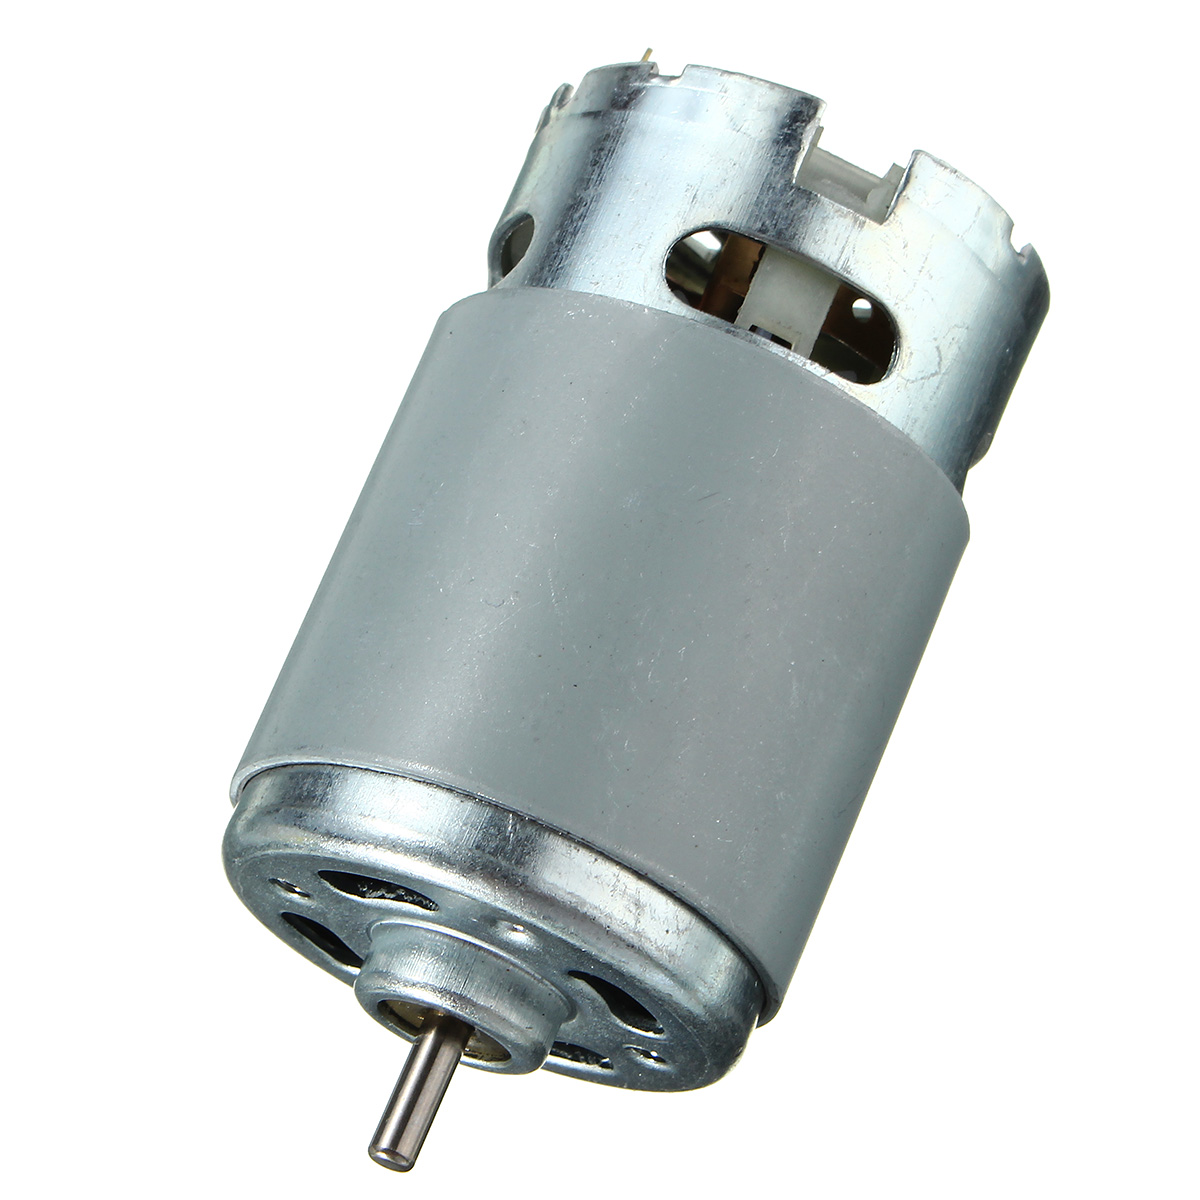 DC 6-14.4V RS-550 Motor For Various Cordless Screwdriver Motors 22800/min Replacement Electric Drill Driver Screwdriver